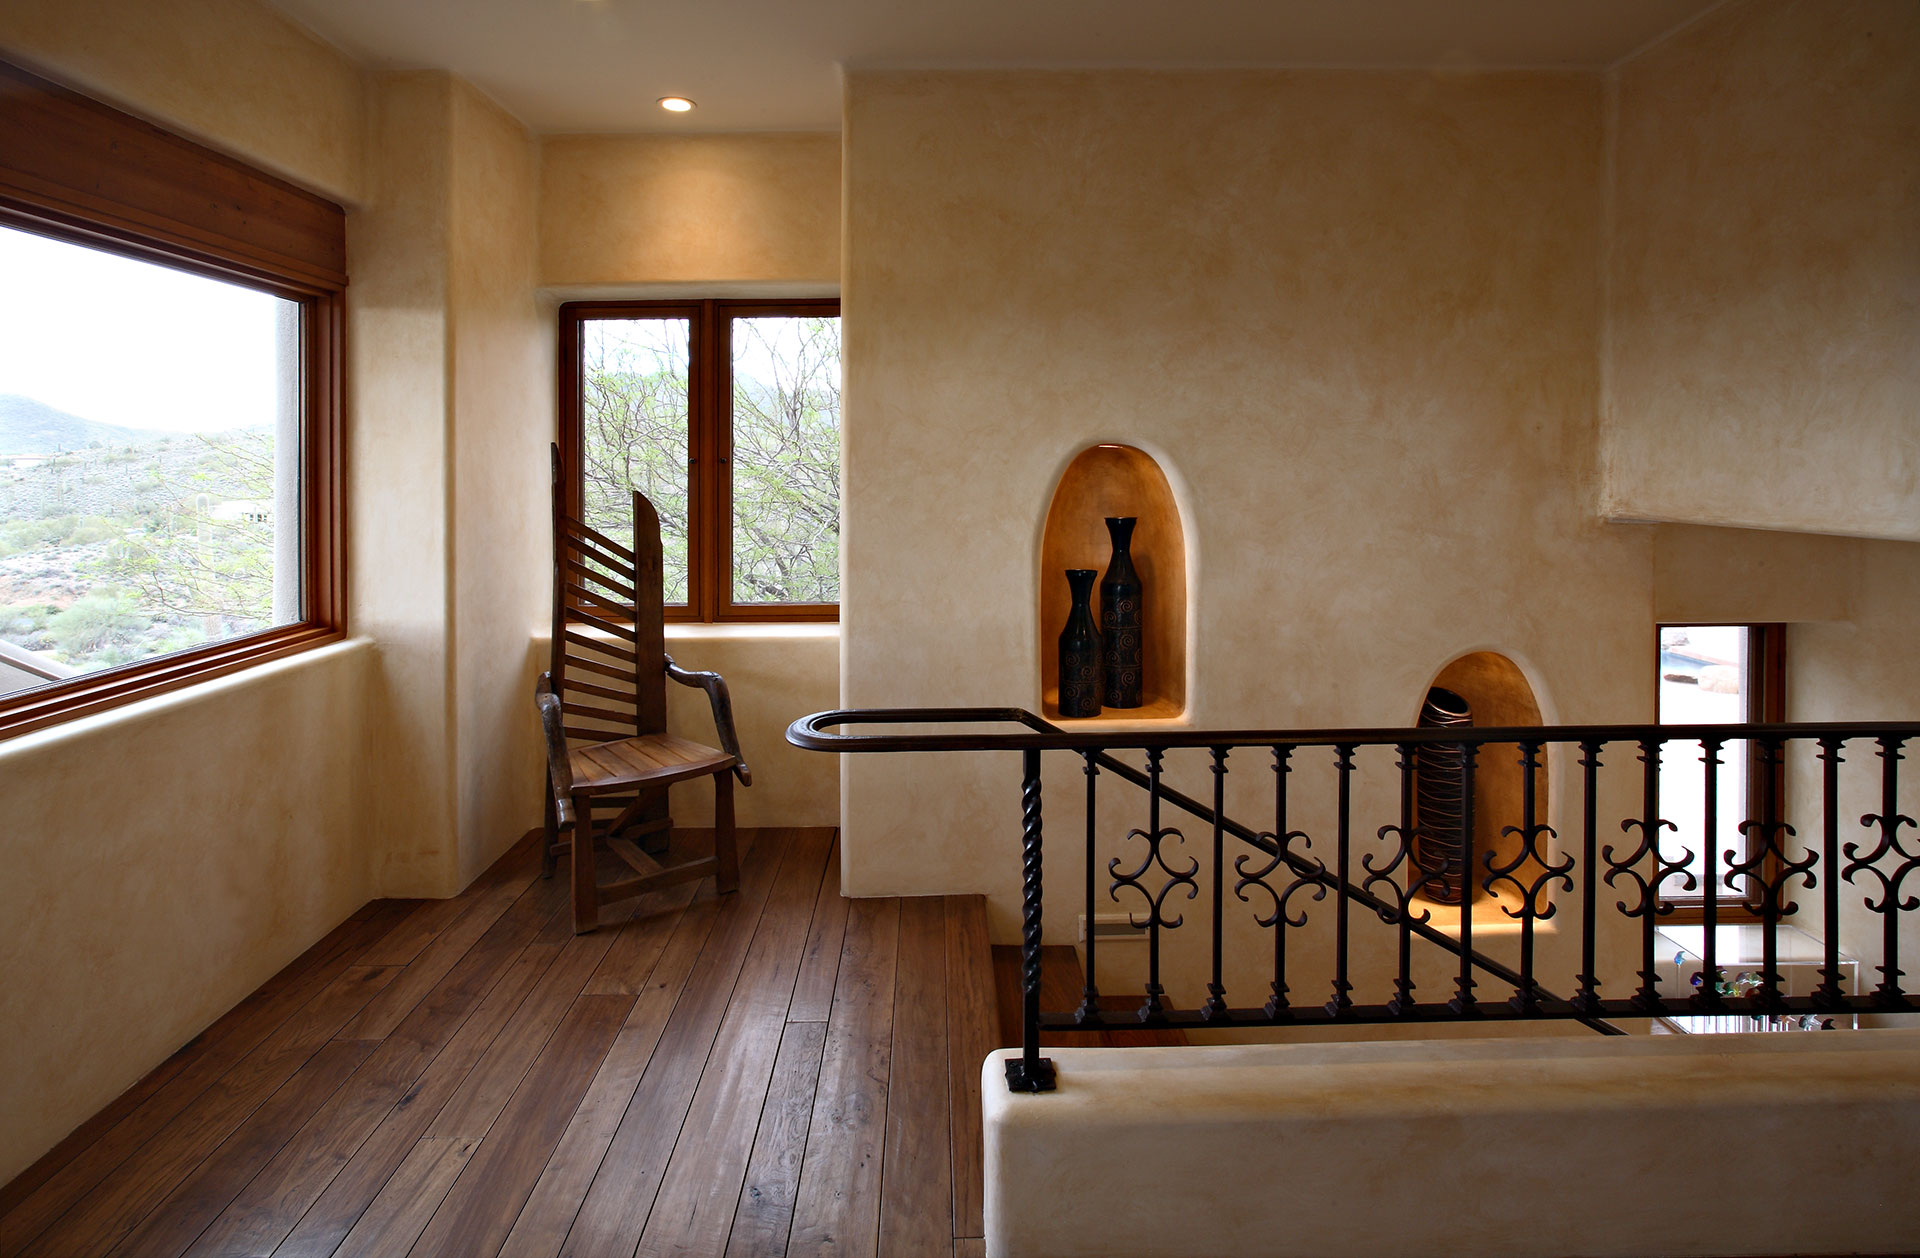 Colleen Pawling - Santa Fe Stairs